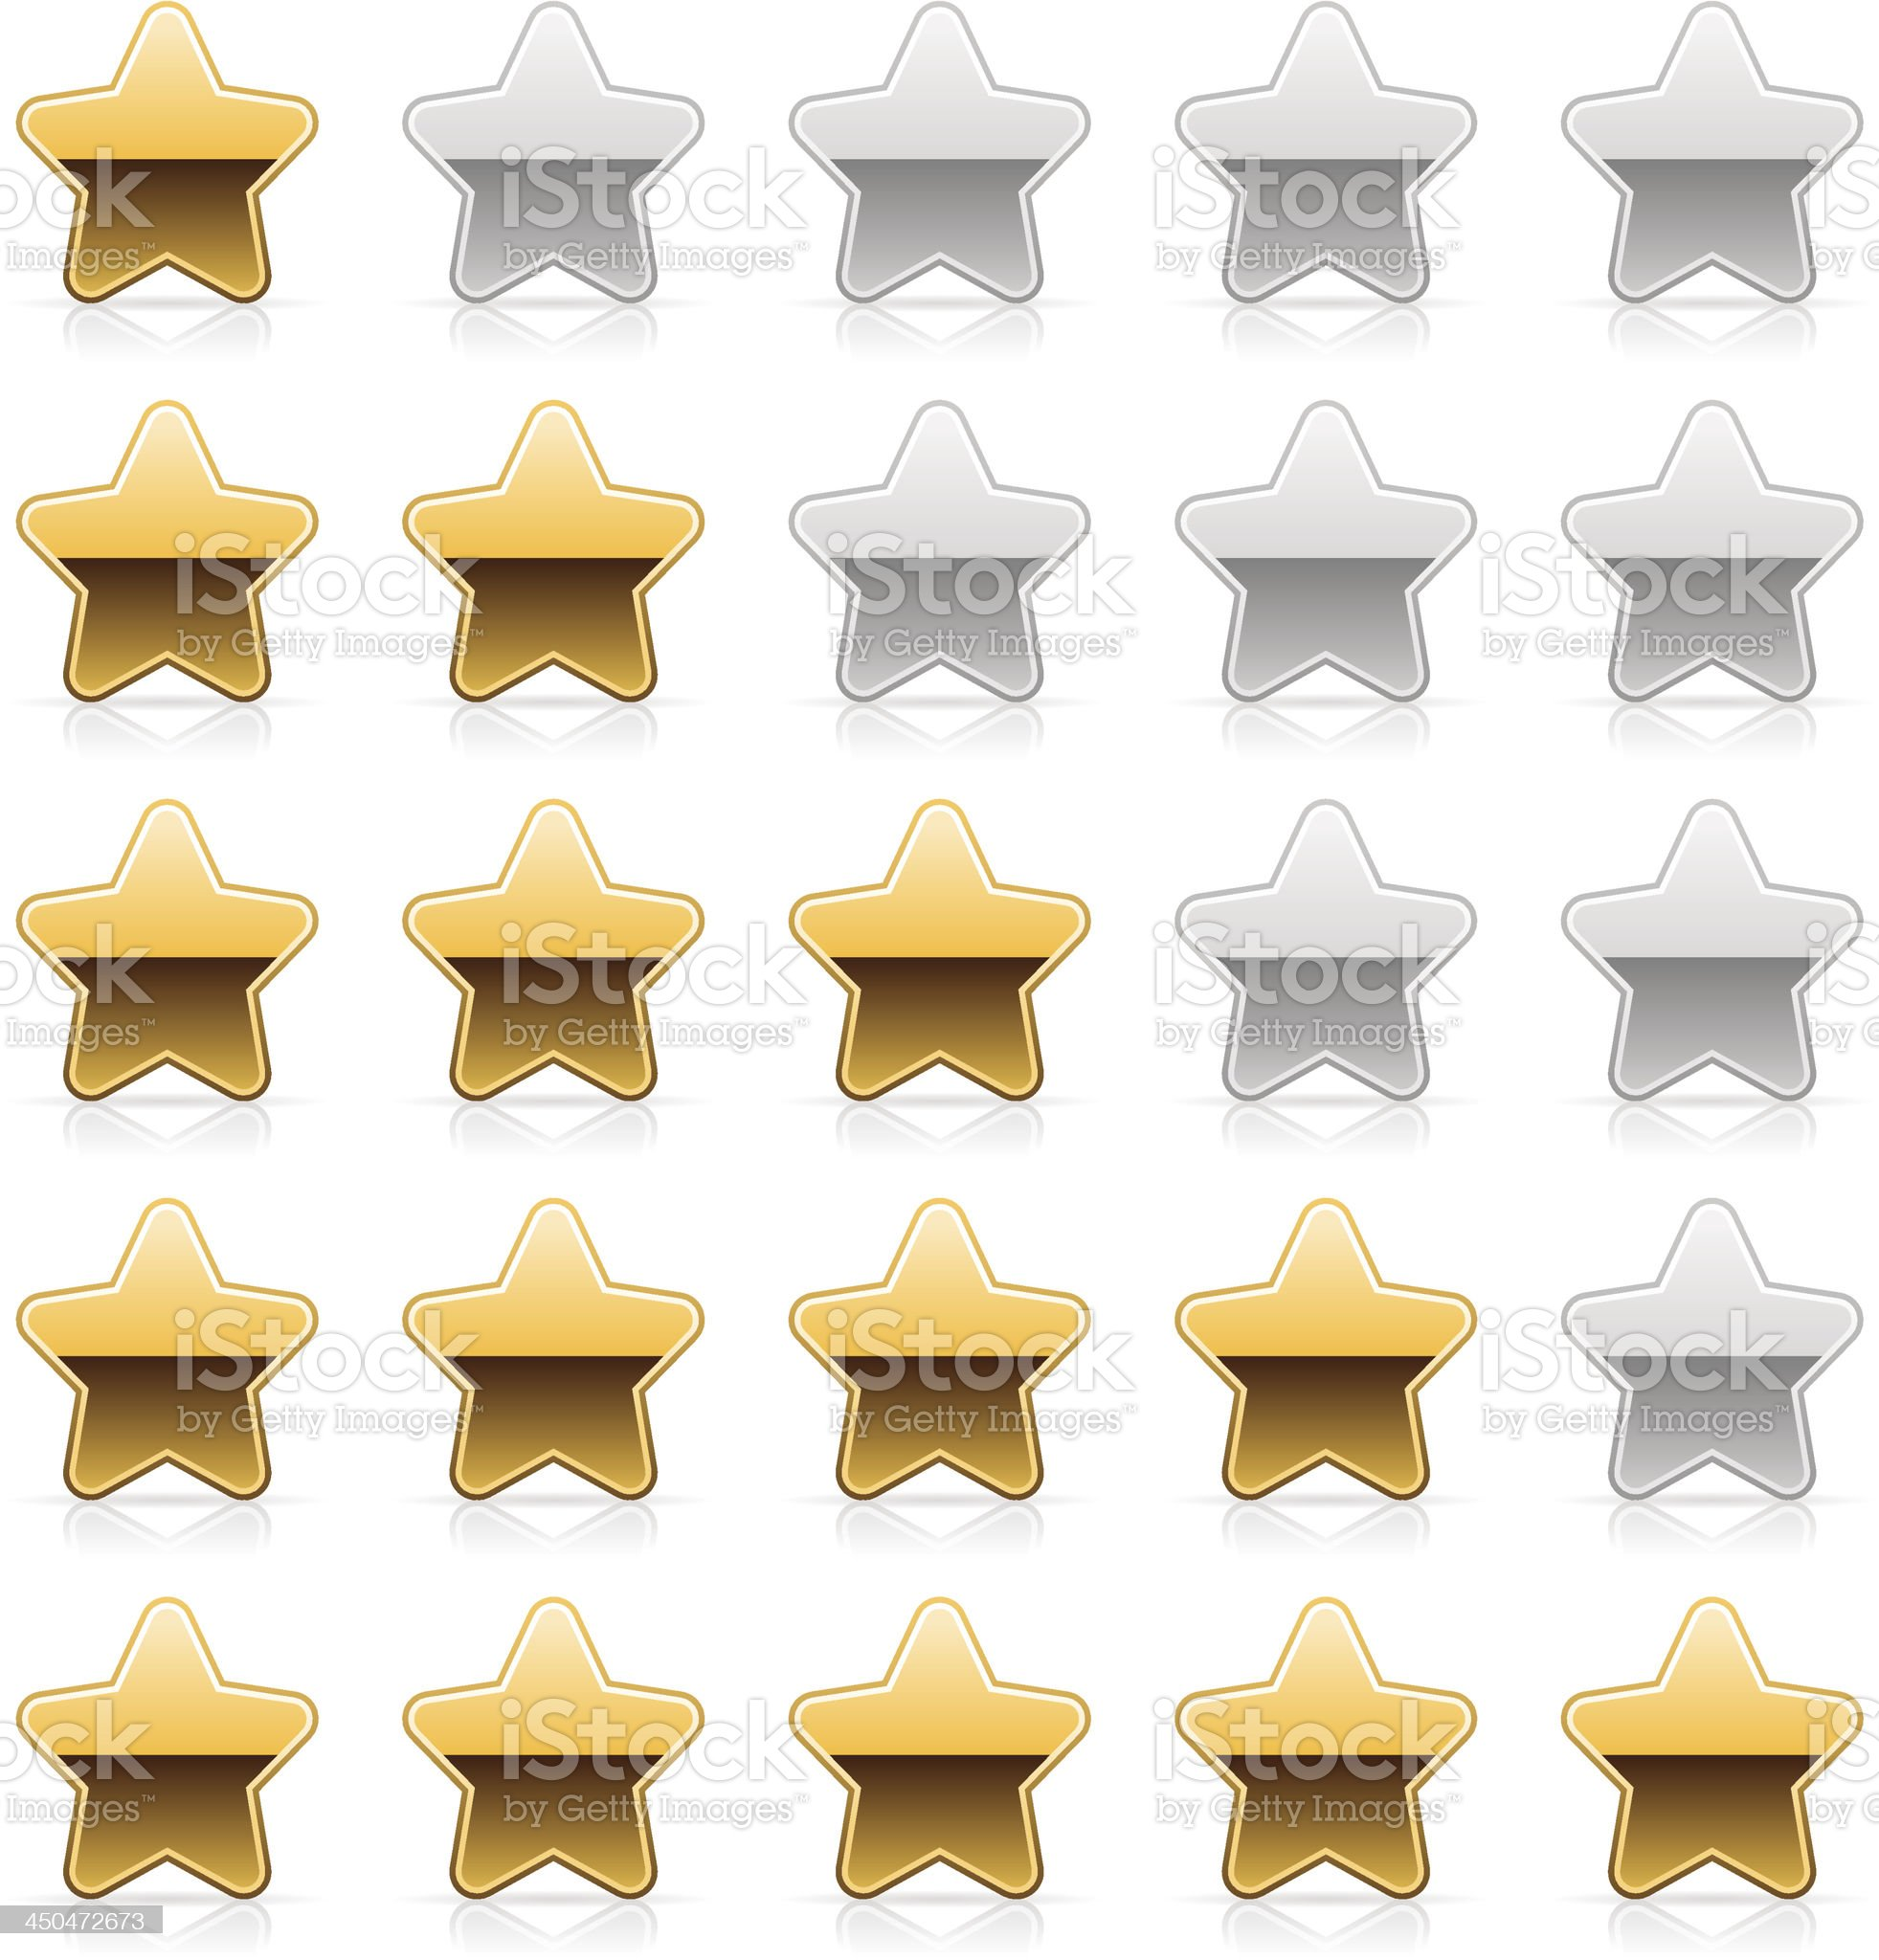 Five sign yellow star gold silver metal chrome rating icon royalty-free stock vector art